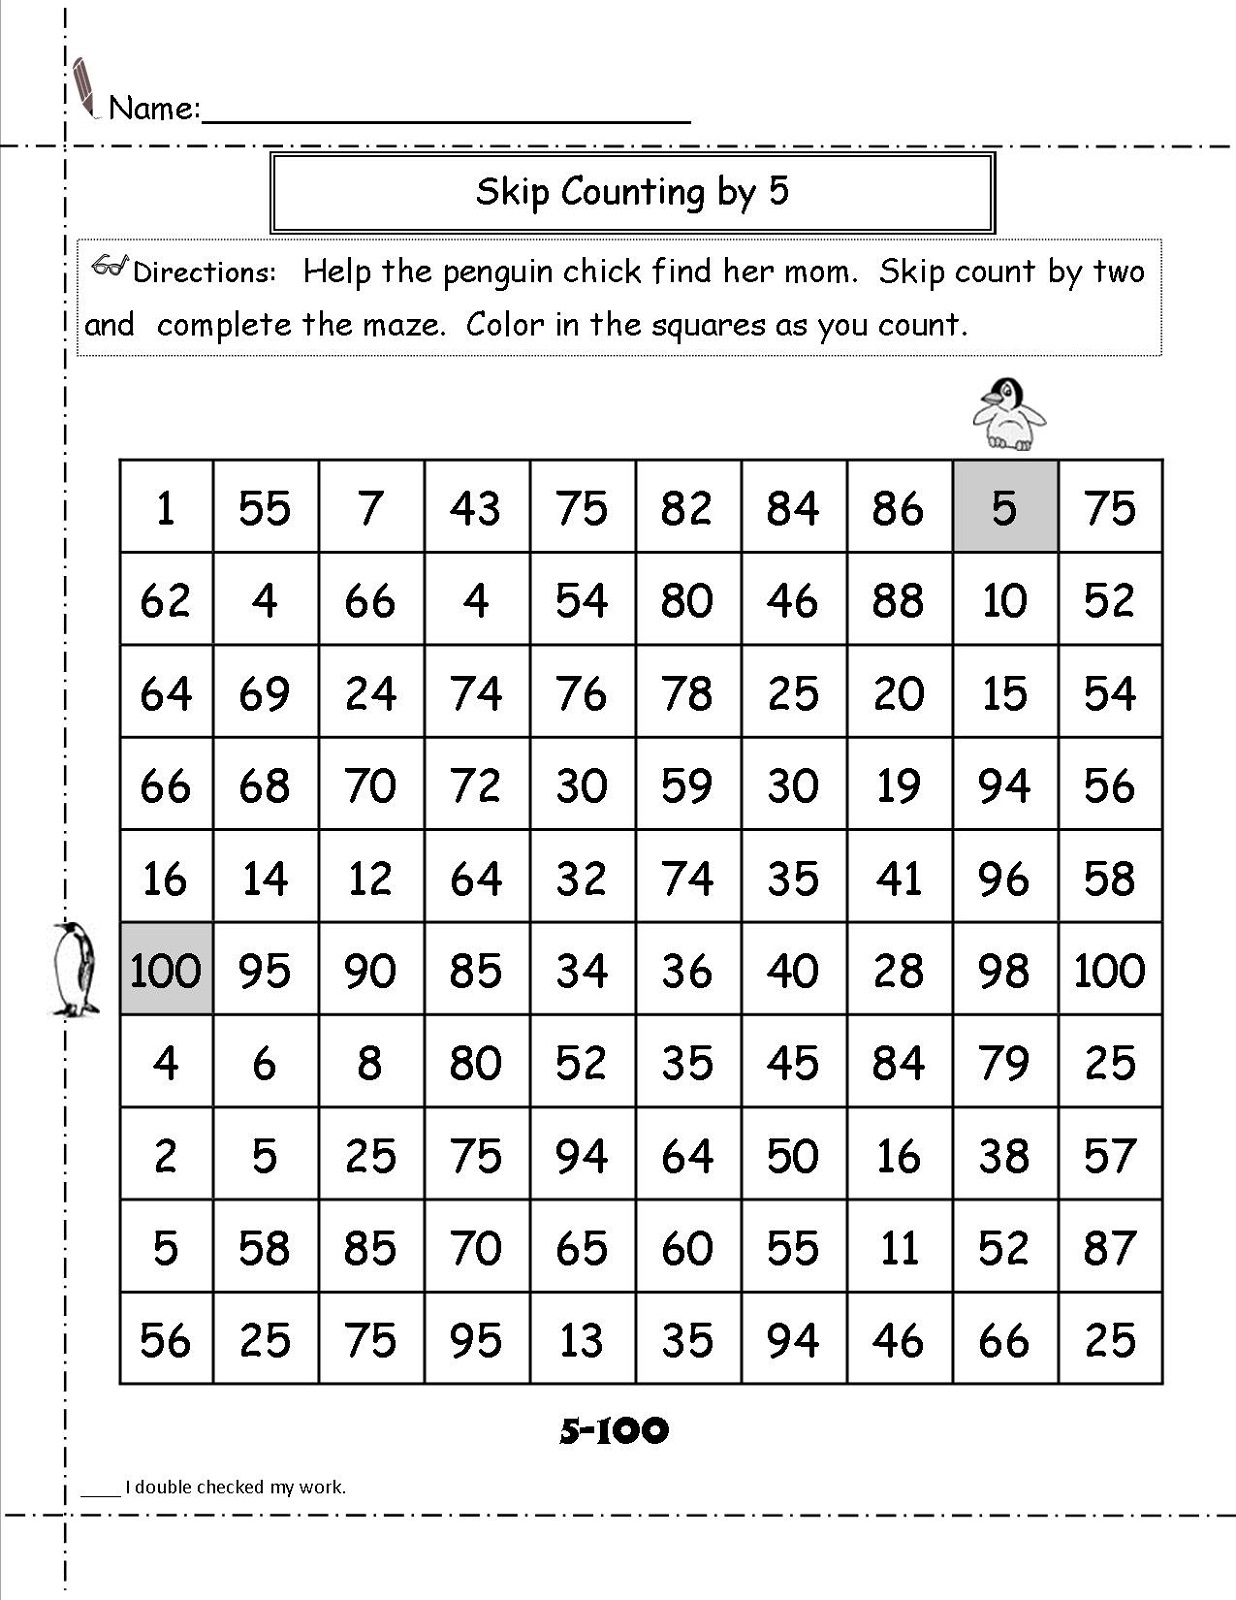 skip-count-by-5-worksheet-penguin